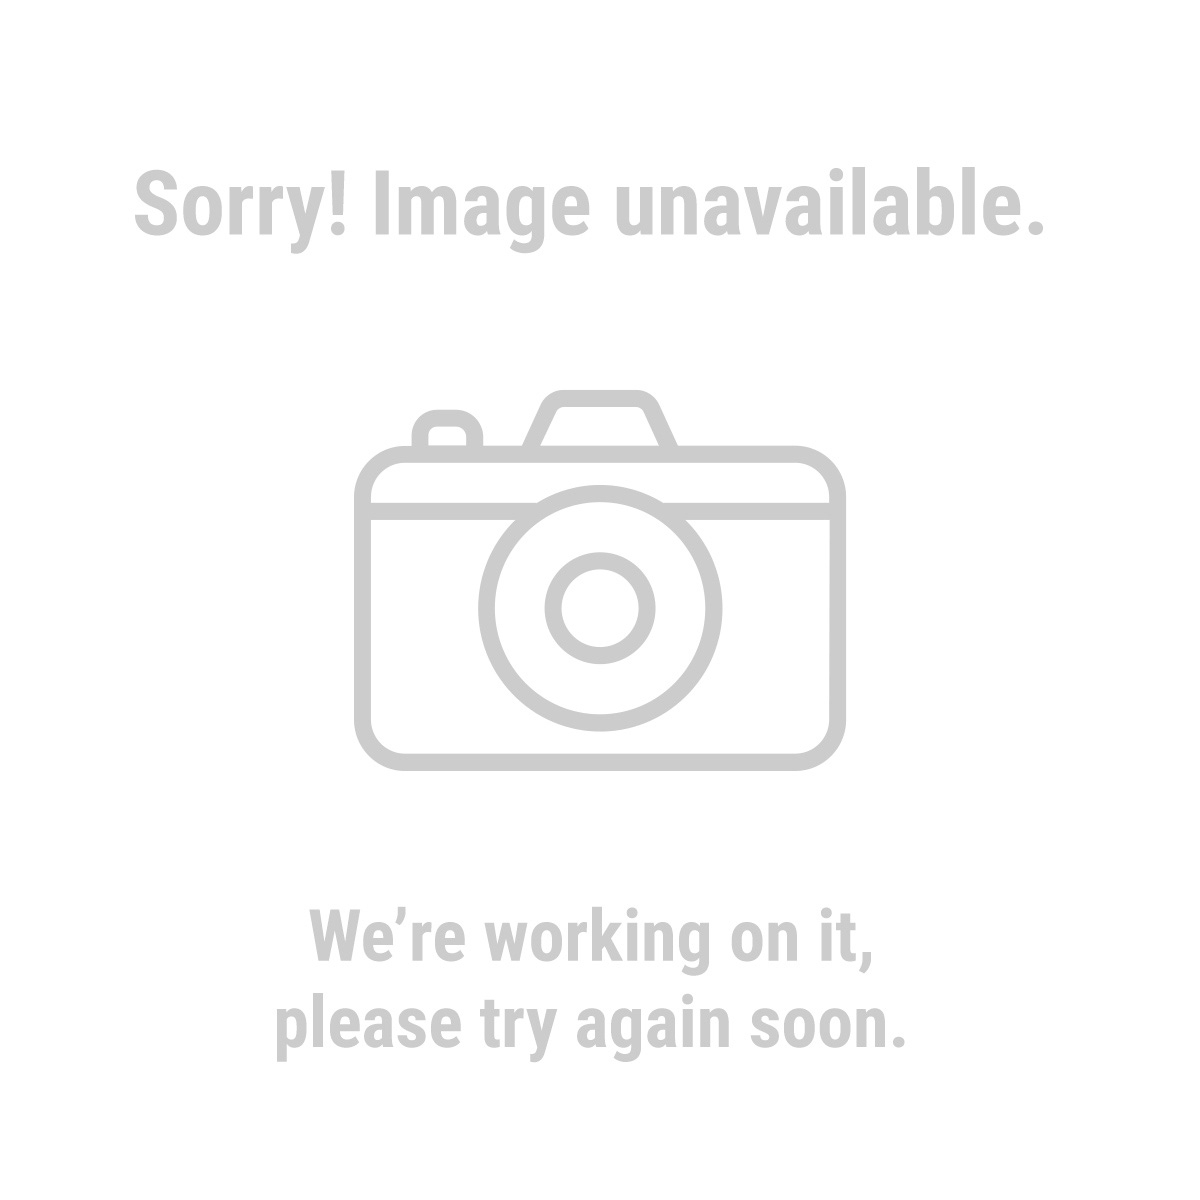 Storehouse 67591 120 Piece Roll Pin Storehouse